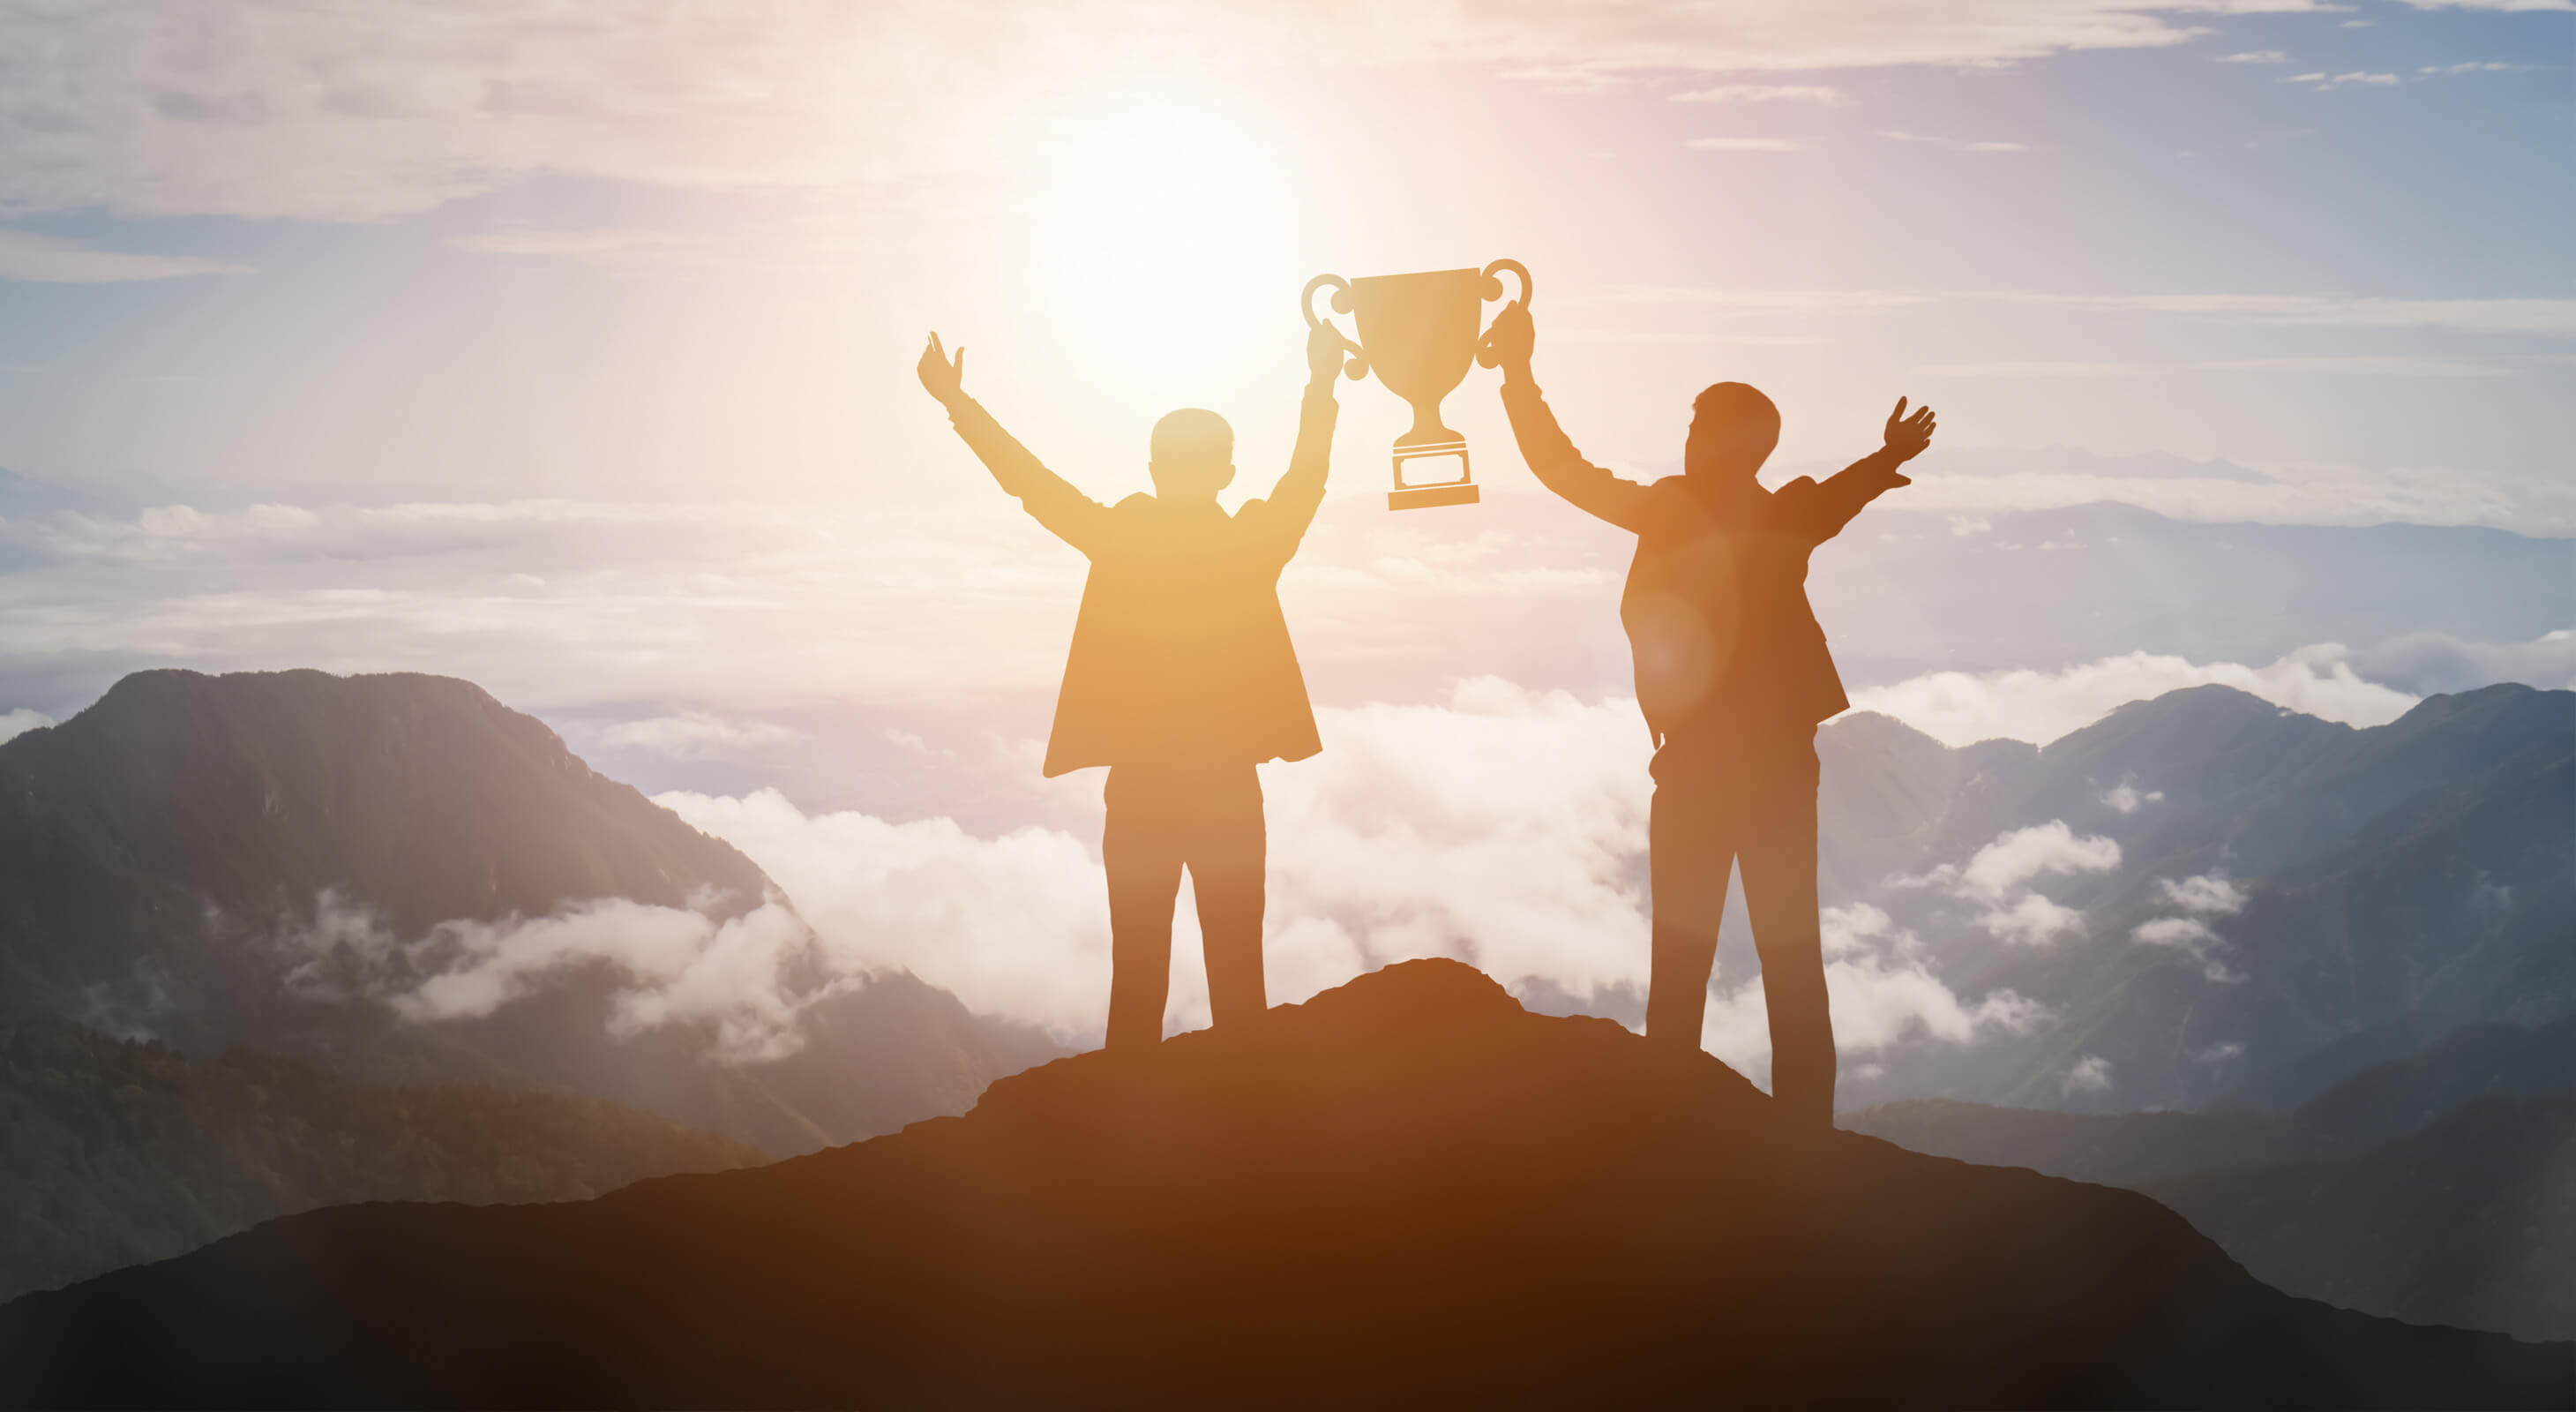 Two people winning on the top of a mountain